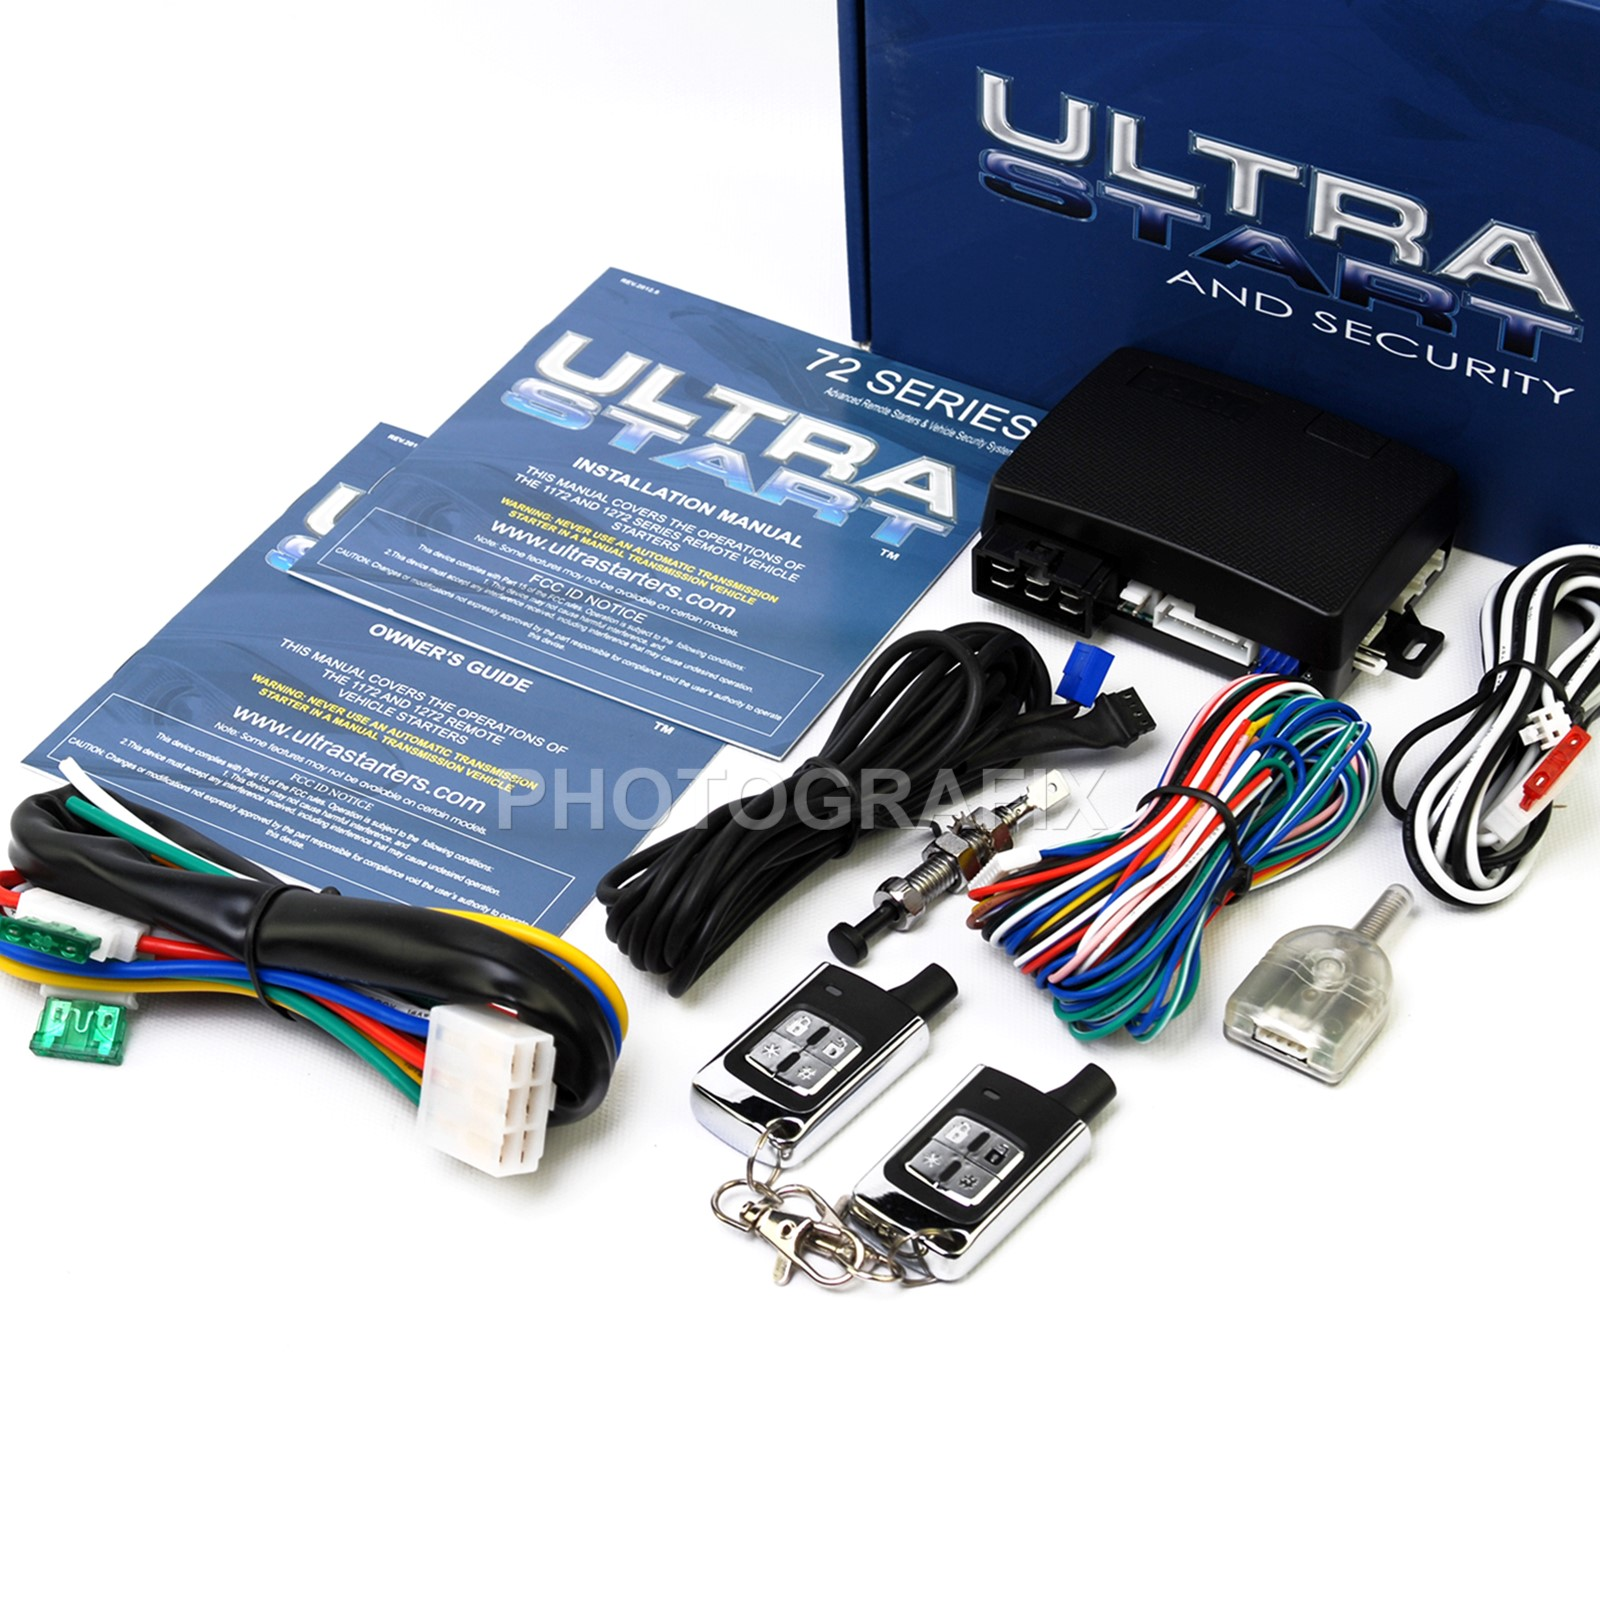 Ultra Remote Start Wiring Diagram Diagrams Avital Shapely Xr Pro Keyless Auto Car Starter Rh Gm